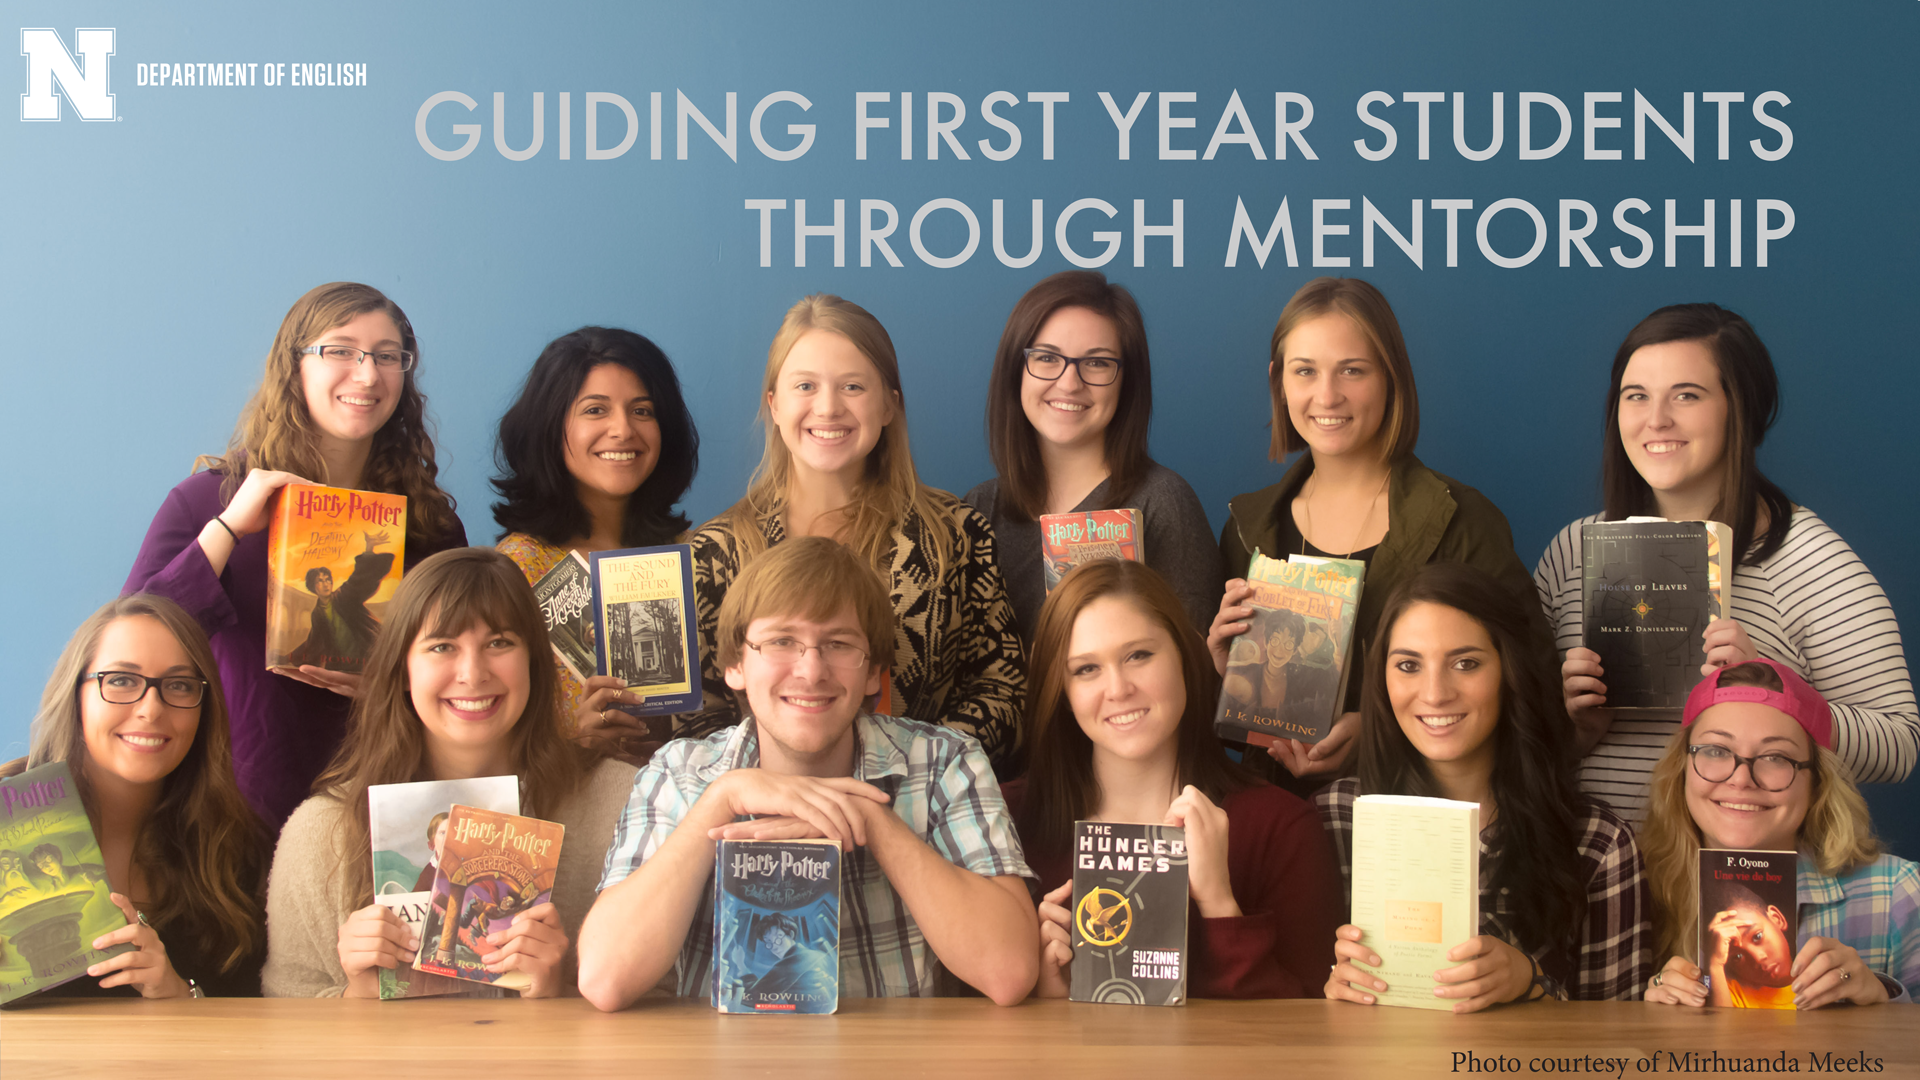 English Student Advisory Board members holding their favorite books. Photo courtesy of Mirhuanda Meeks